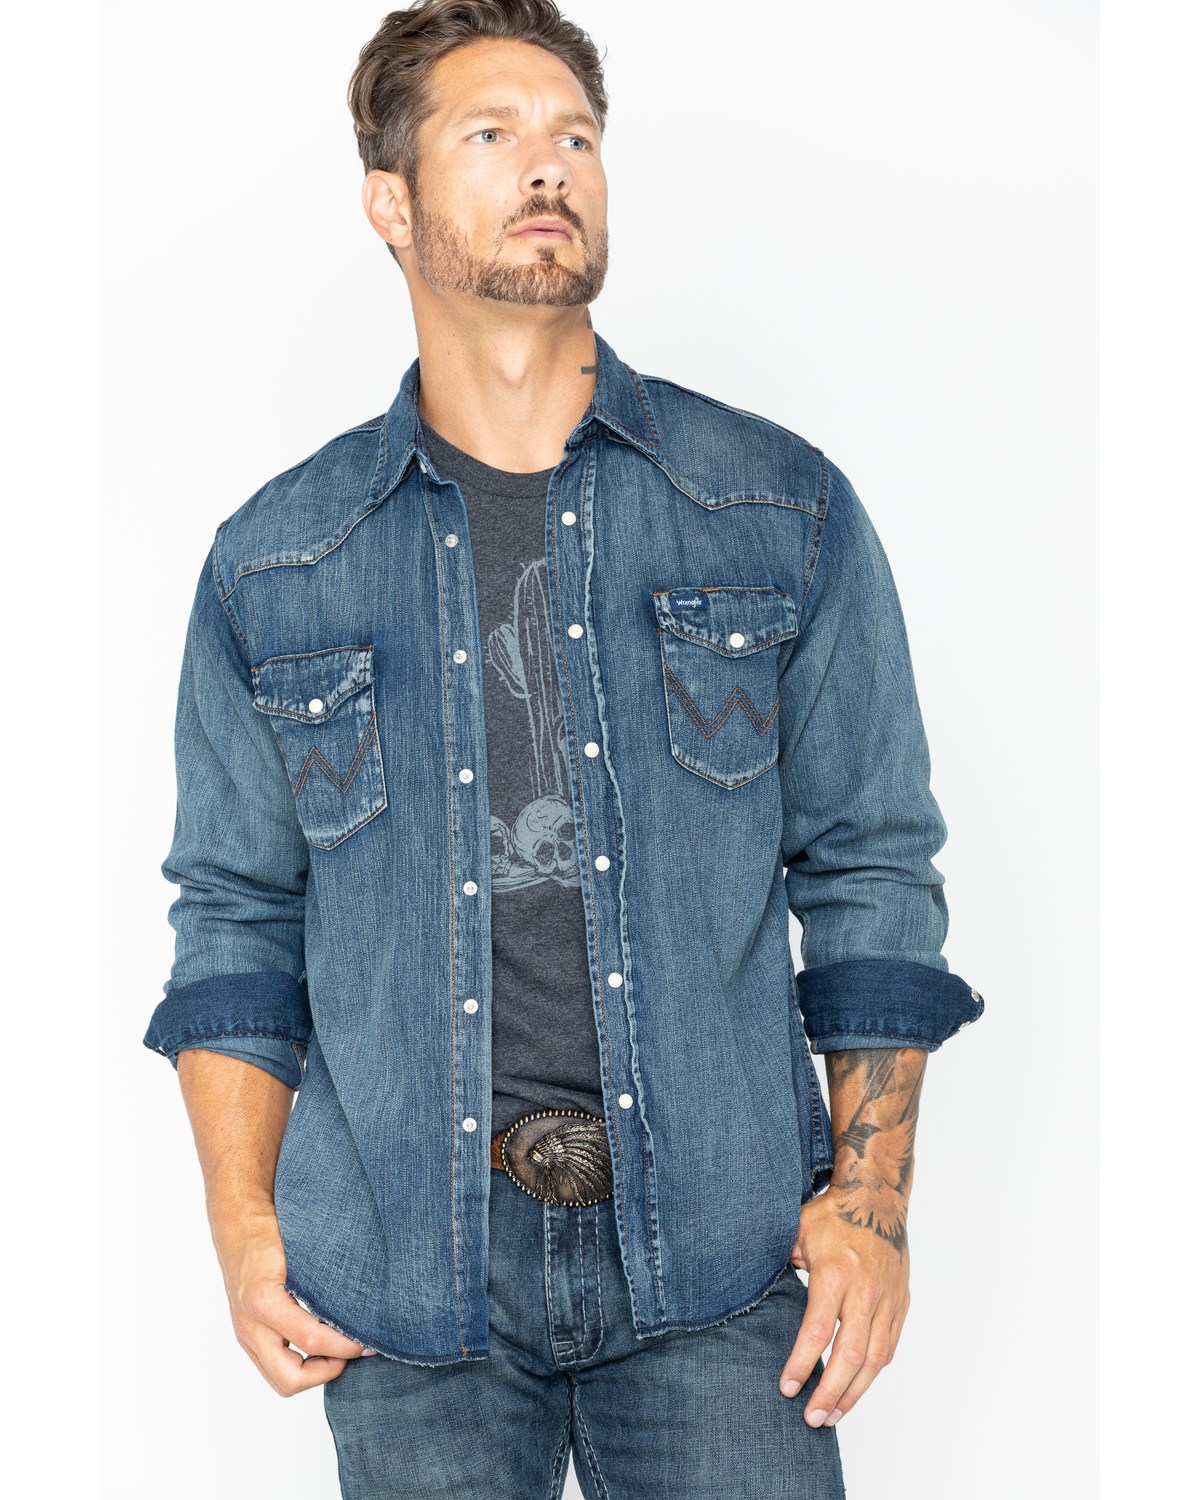 87f47adffa Wrangler Cowboy Cut Men s Long Sleeve Denim Work Shirt